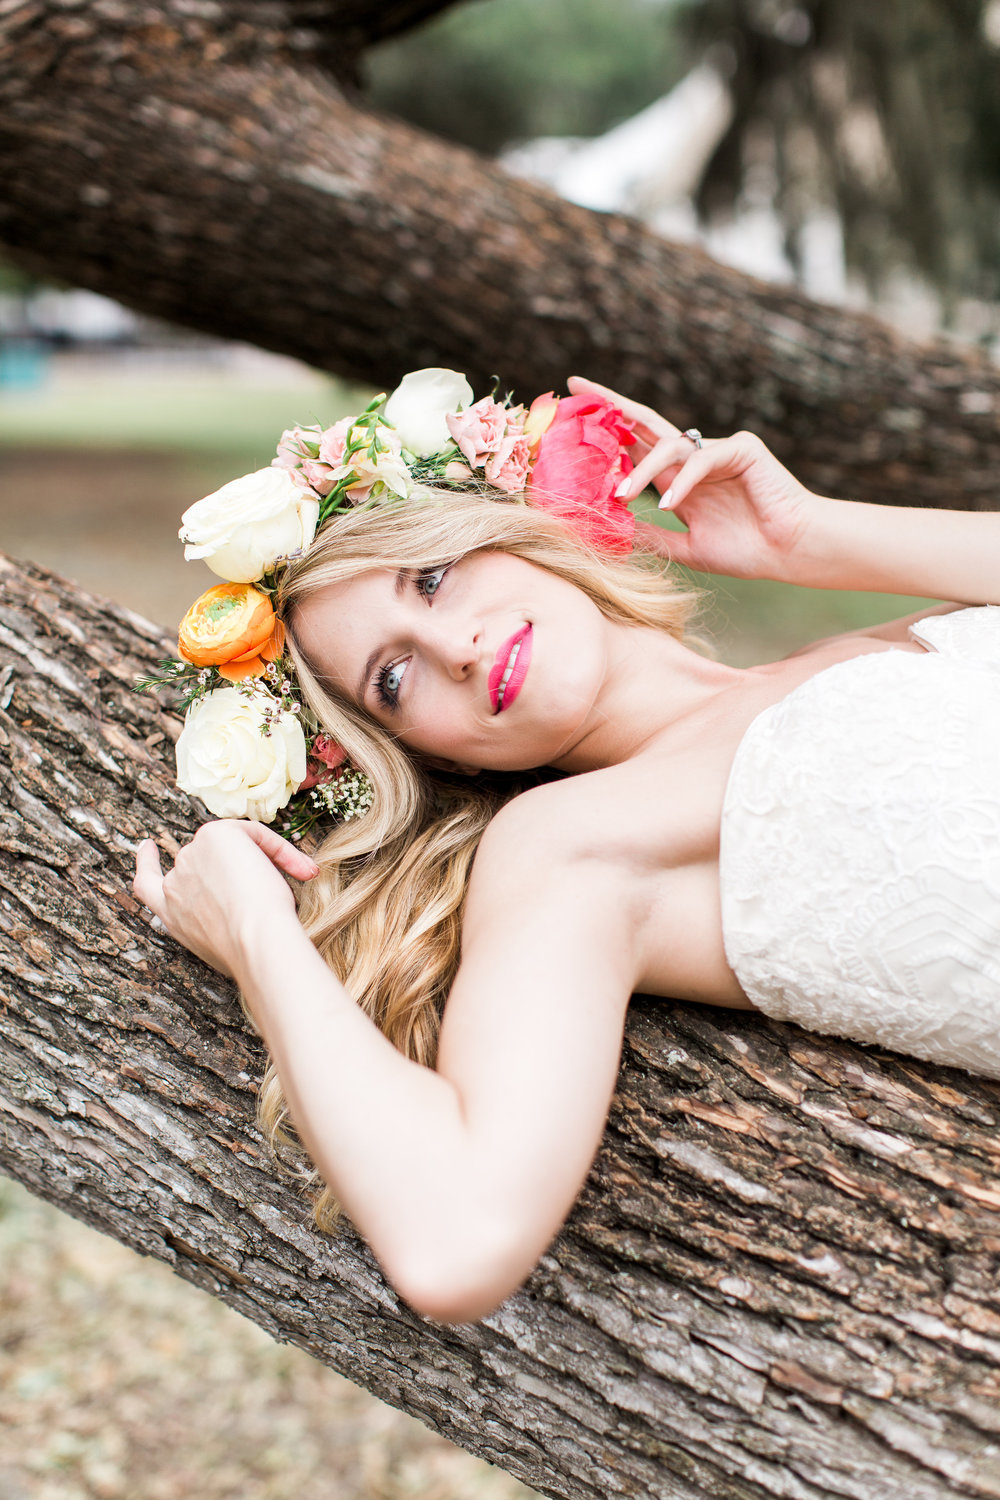 AptBPhoto_IvoryBeau_FallenTrees-fredericka-by-maggie-sottero-flower-crown-ivory-and-beau-savannah-wedding-florist-savannah-bridal-boutique-savannah-wedding-dresses.jpg